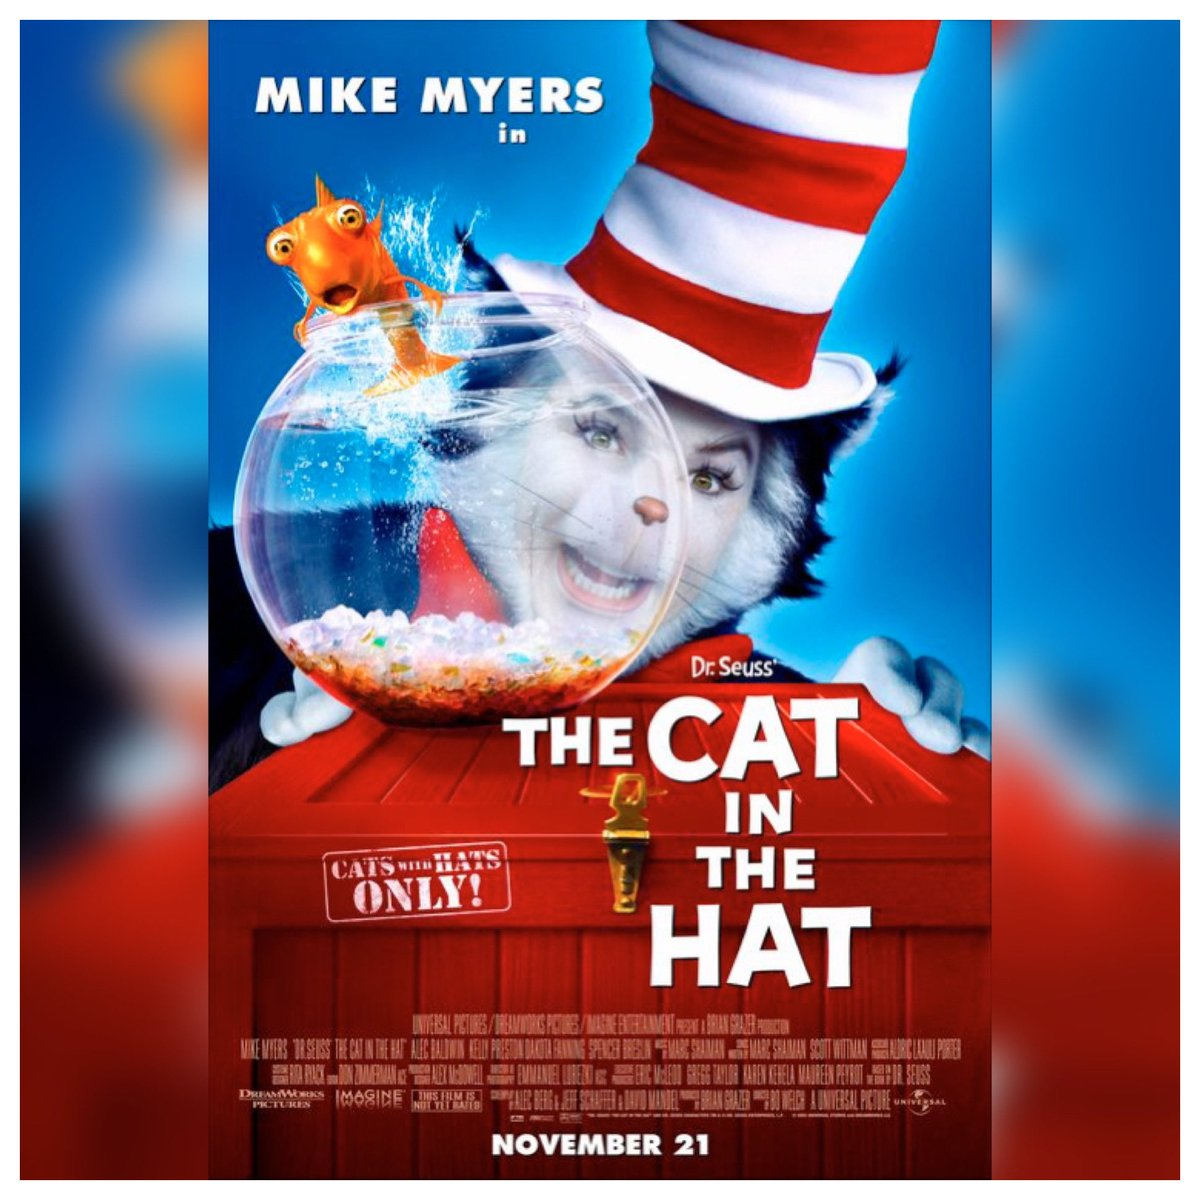 #NW #TheCatInTheHat https://t.co/wnN9Rktia0